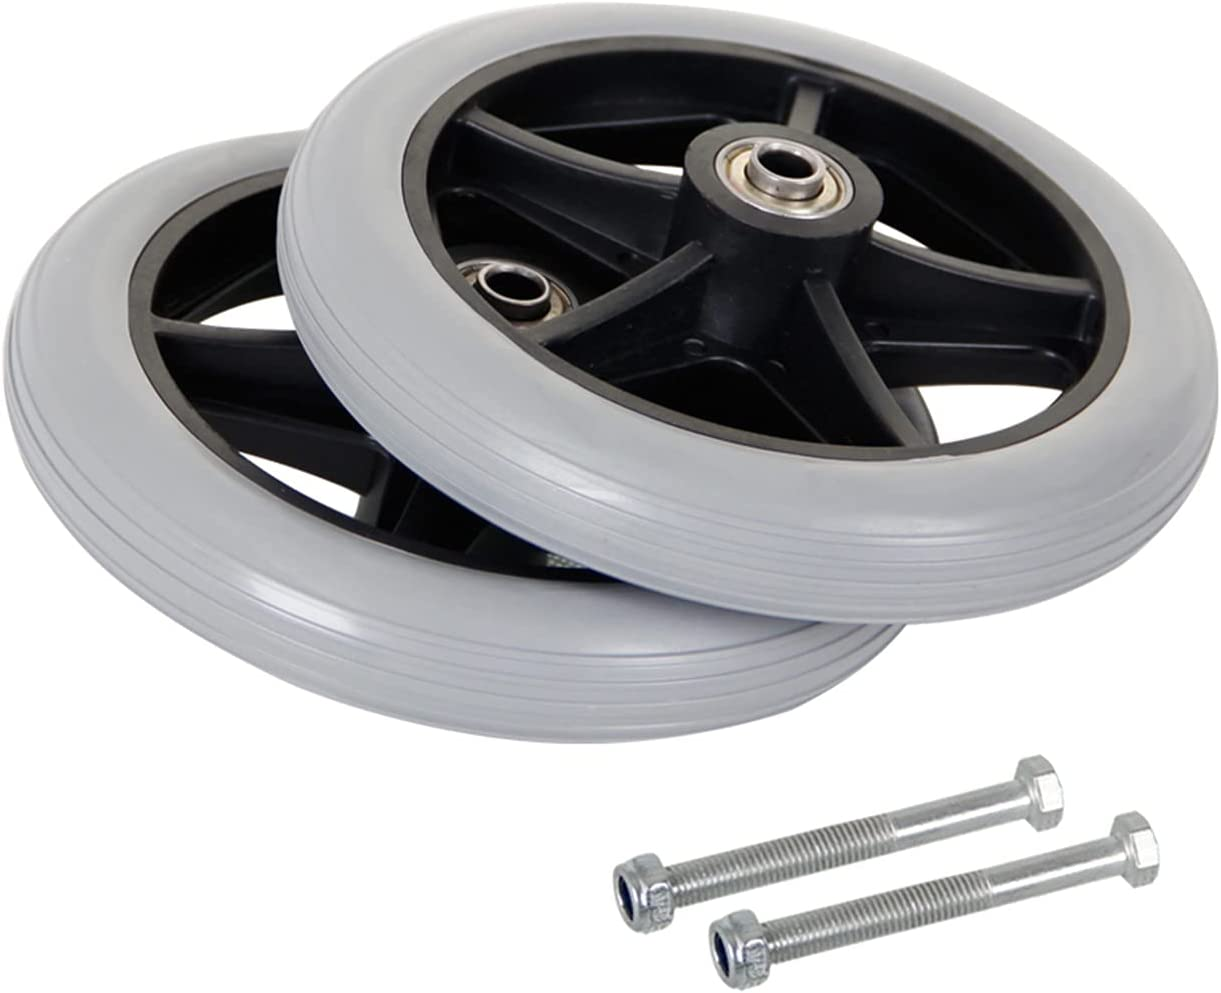 YFGYF Wheelchair Wheels 6 7 8 All stores are Max 60% OFF sold Caster Walker Disabled Front Inch